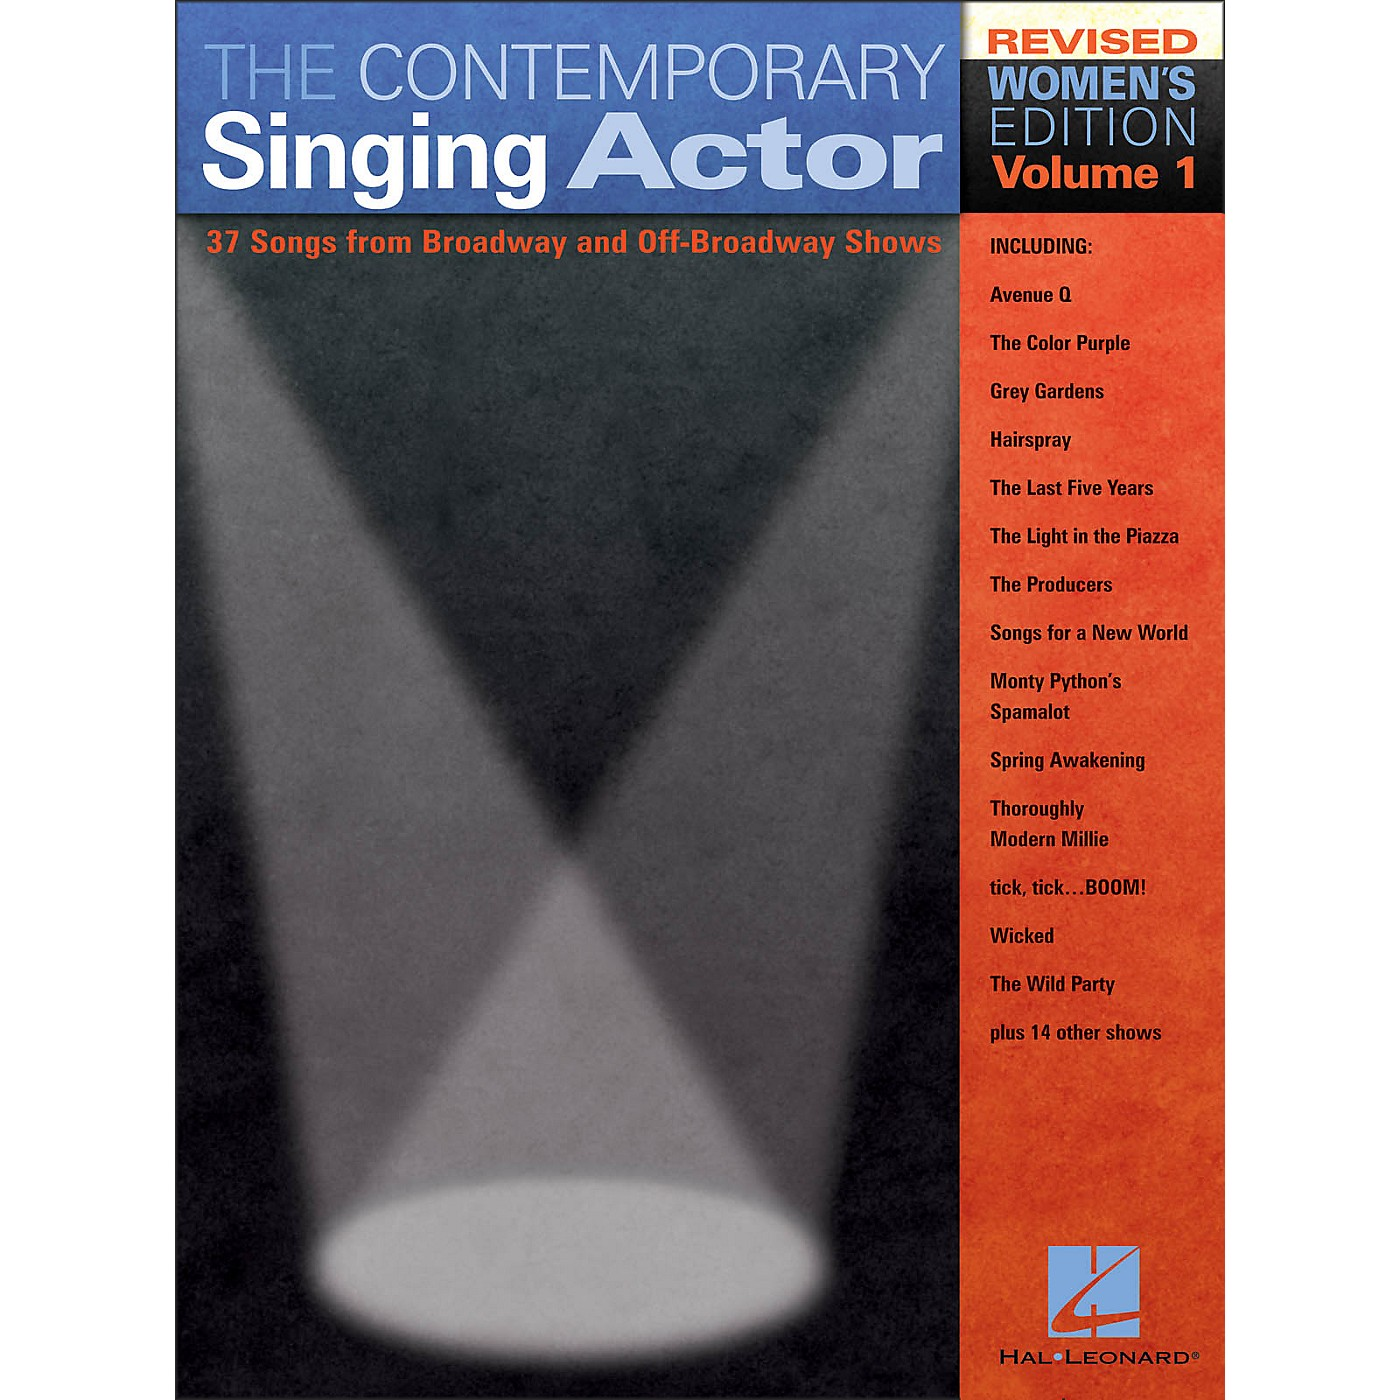 Hal Leonard The Contemporary Singing Actor - Women's Edition Volume 1 thumbnail